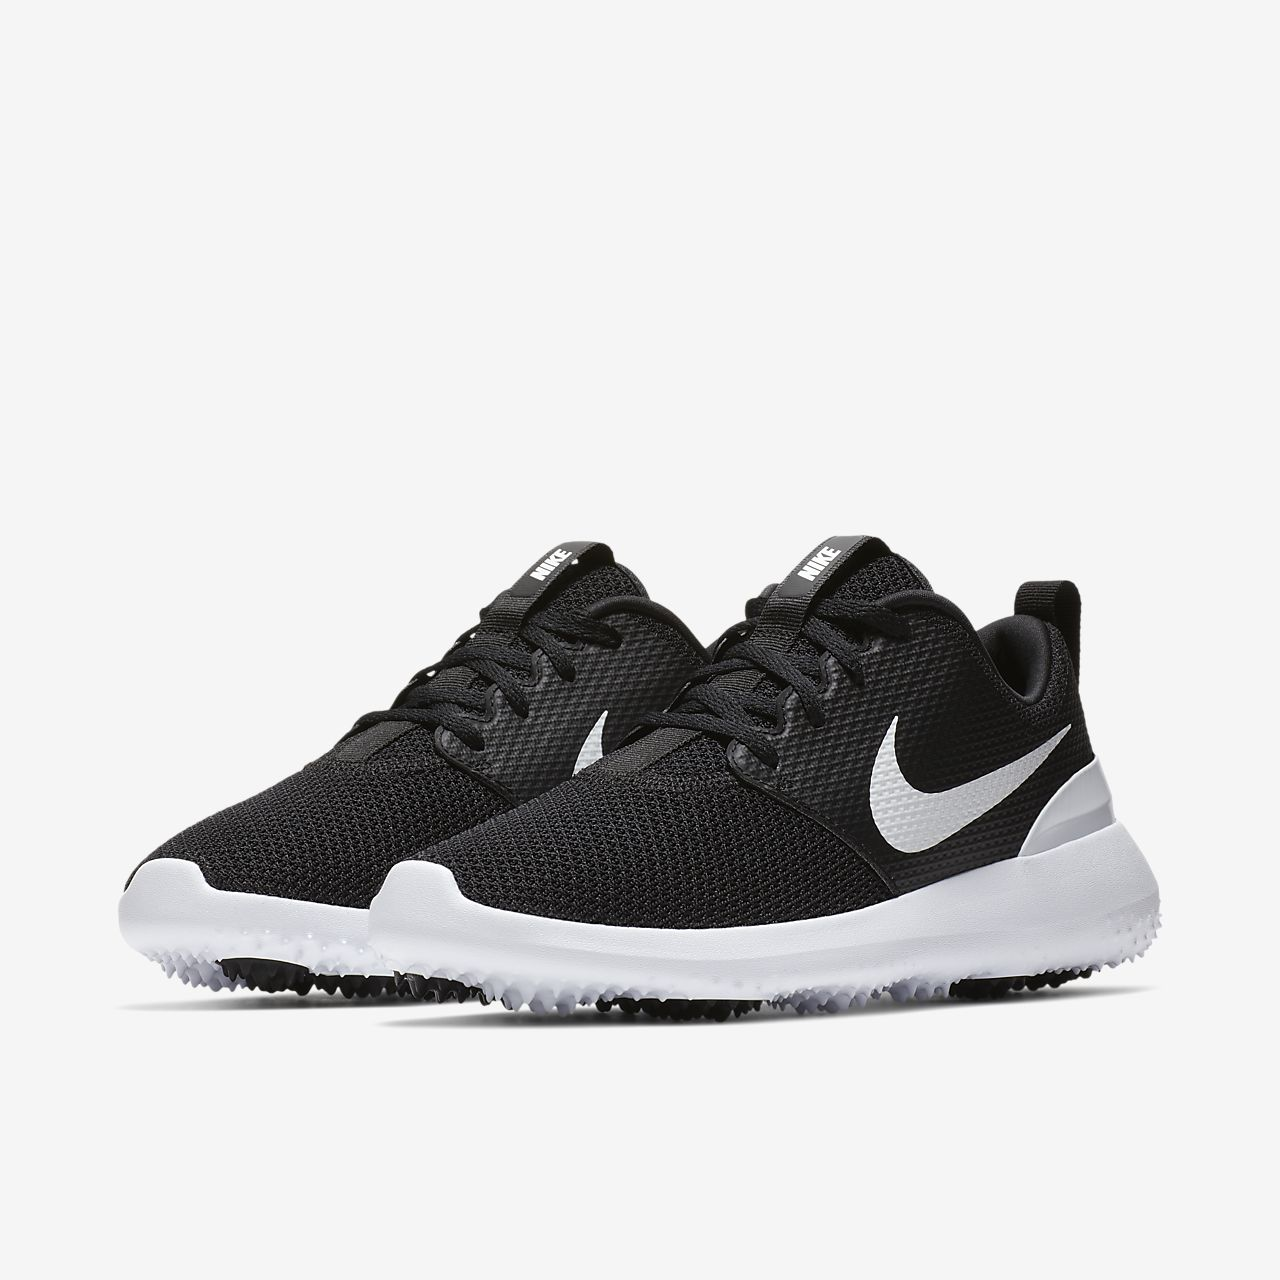 wholesale dealer a95bd 54e42 ... Nike Roshe G Womens Golf Shoe